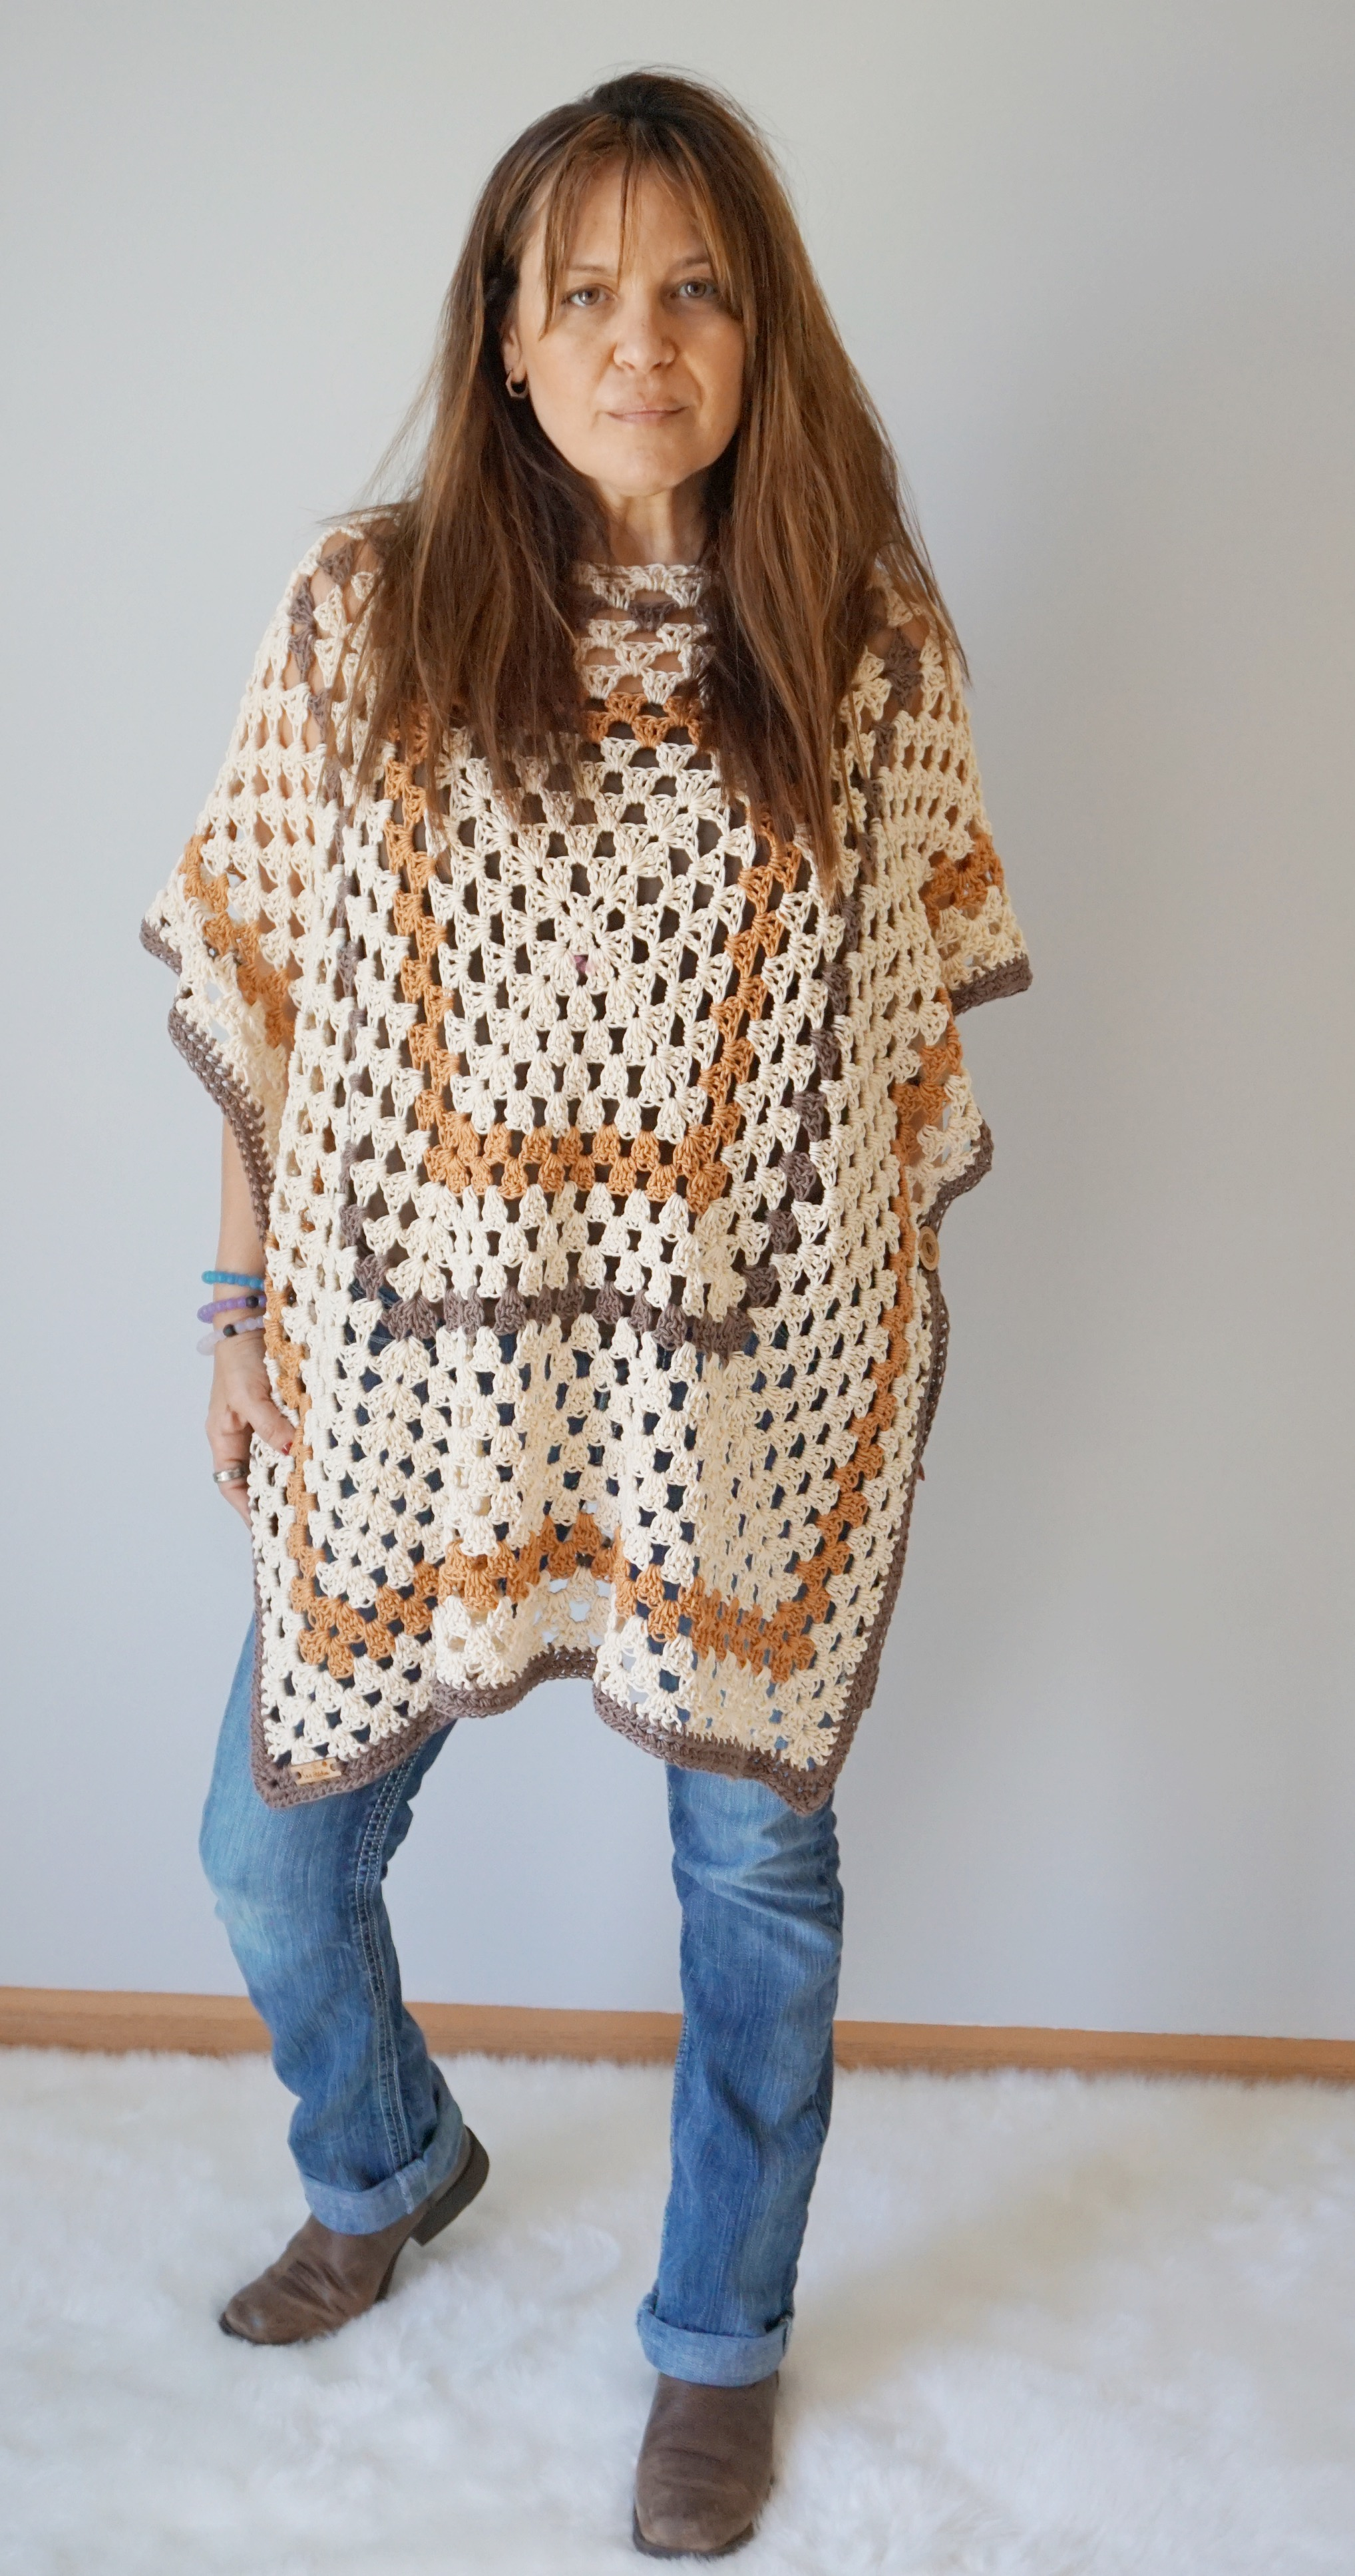 Lion_Brand_247_Cotton_Poncho_Project_58.jpg